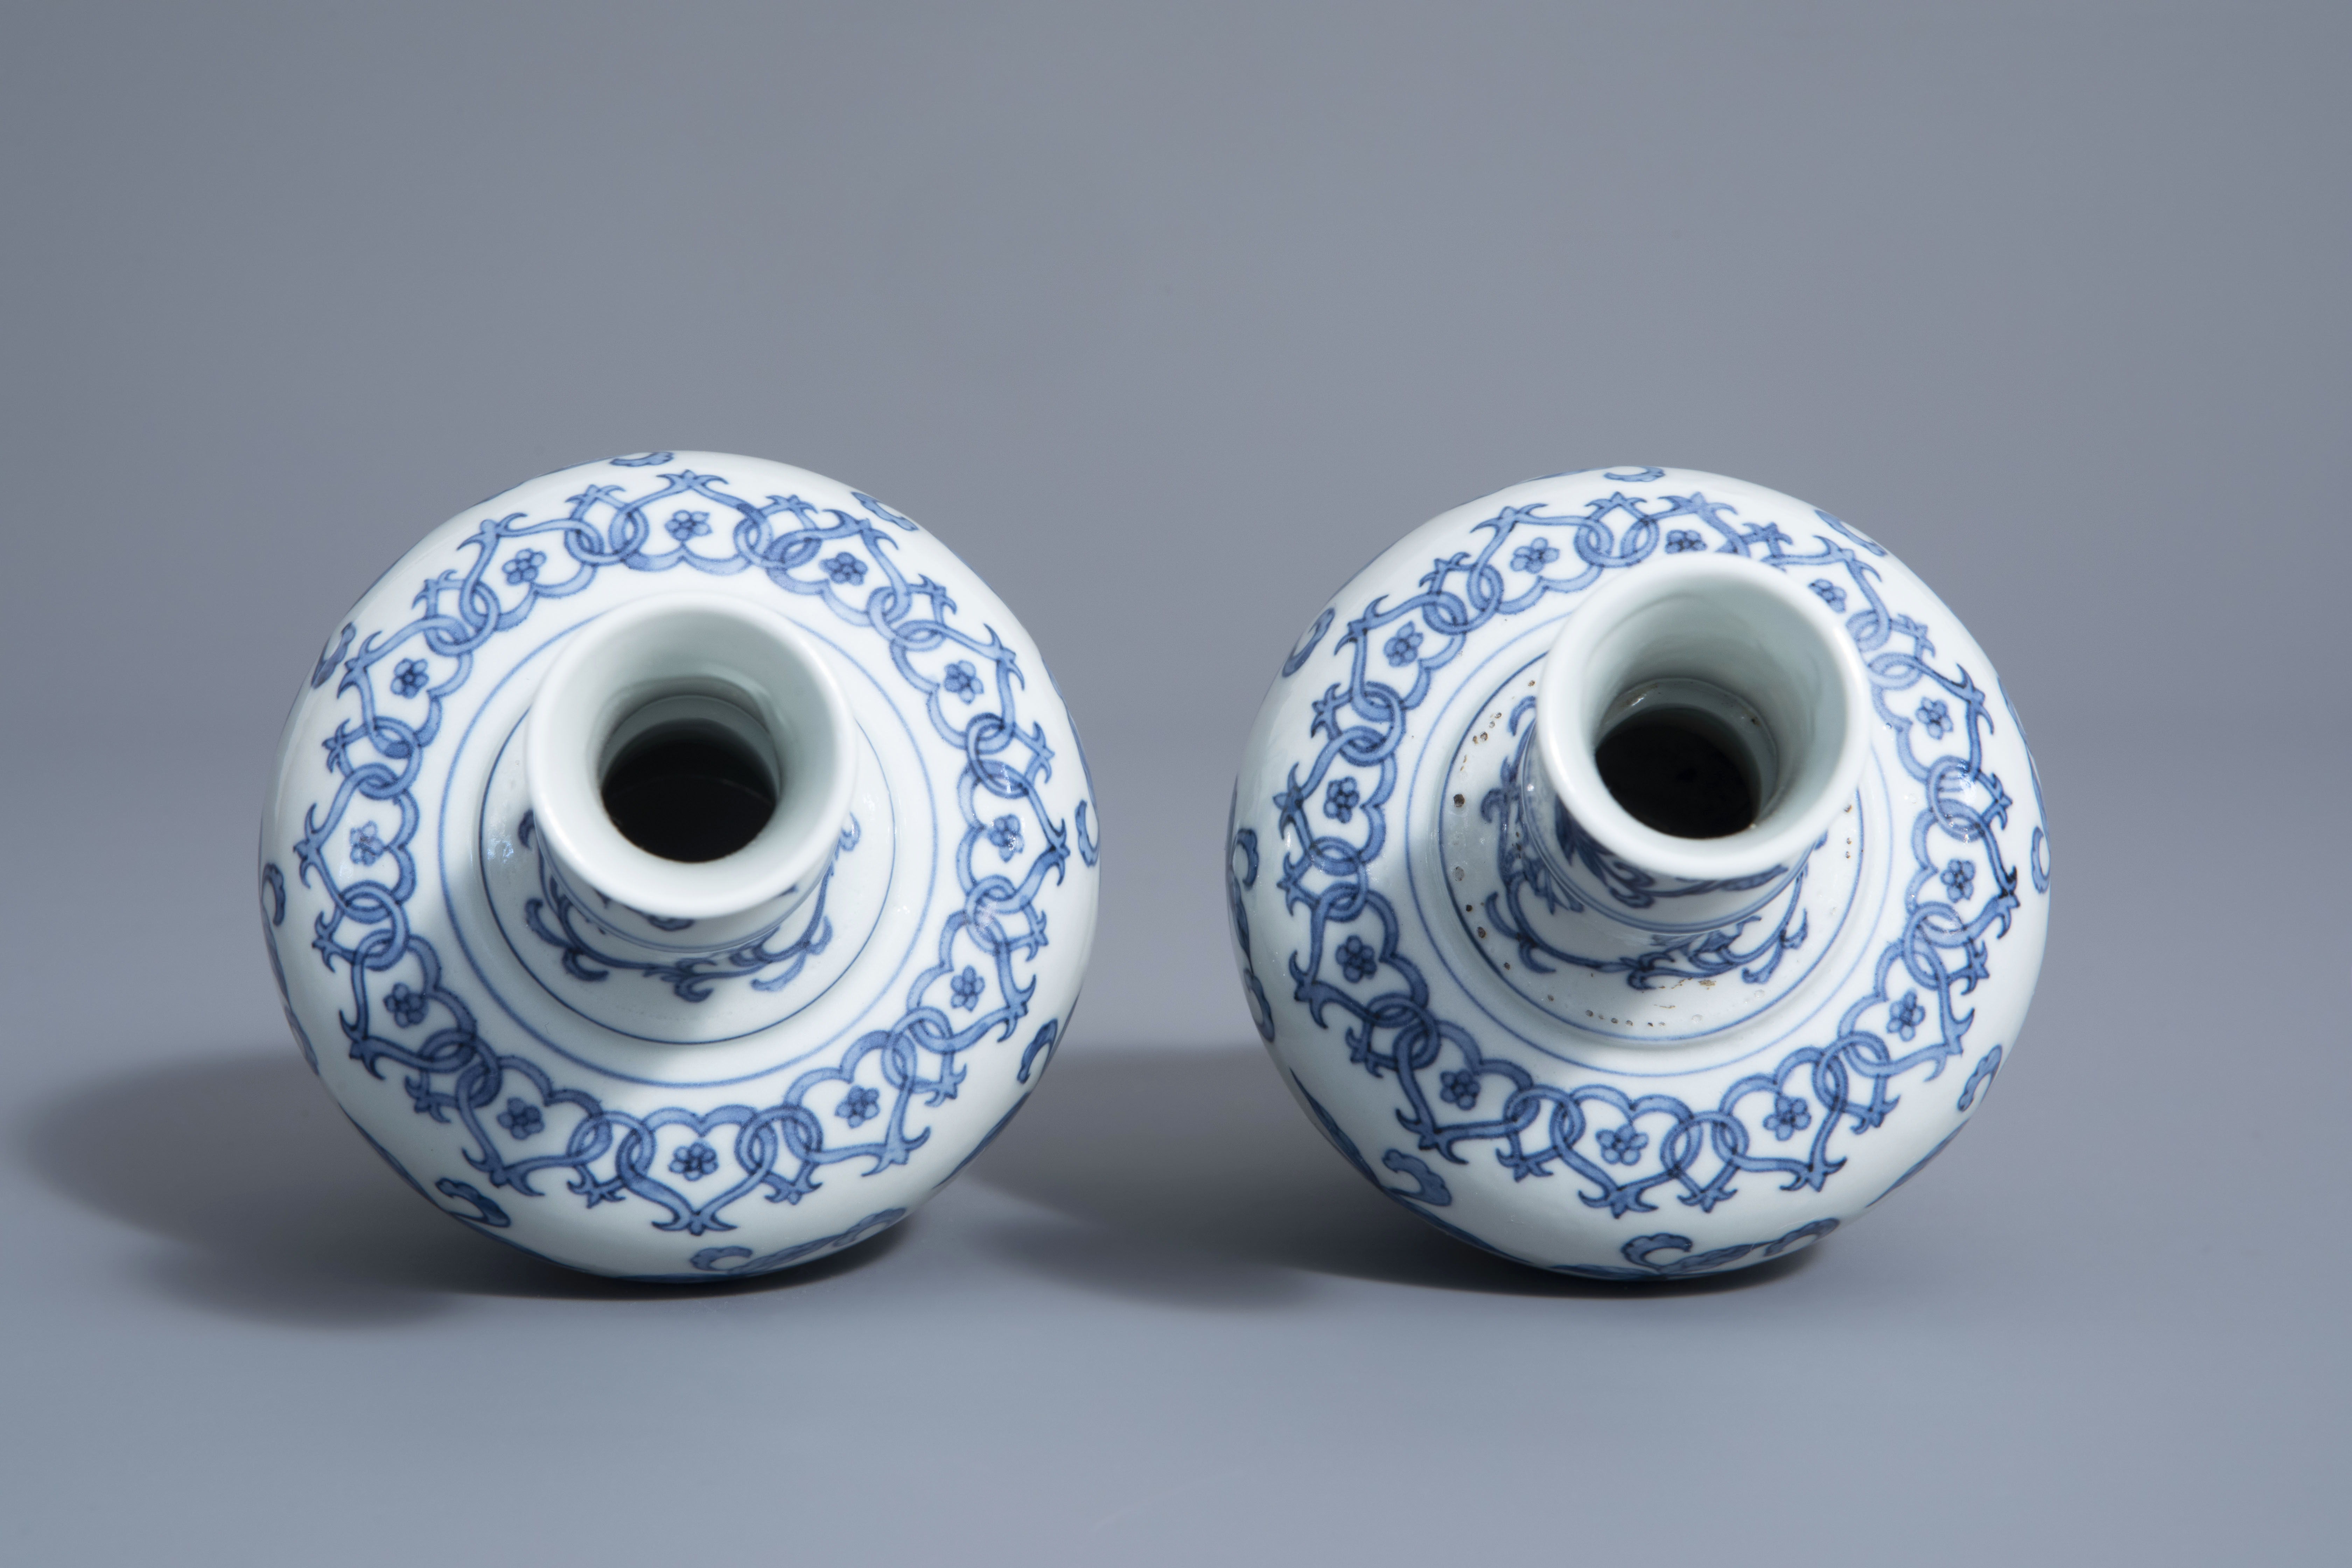 A pair of Chinese blue and white vases with floral design, Chenghua mark, 19th/20th C. - Image 5 of 6